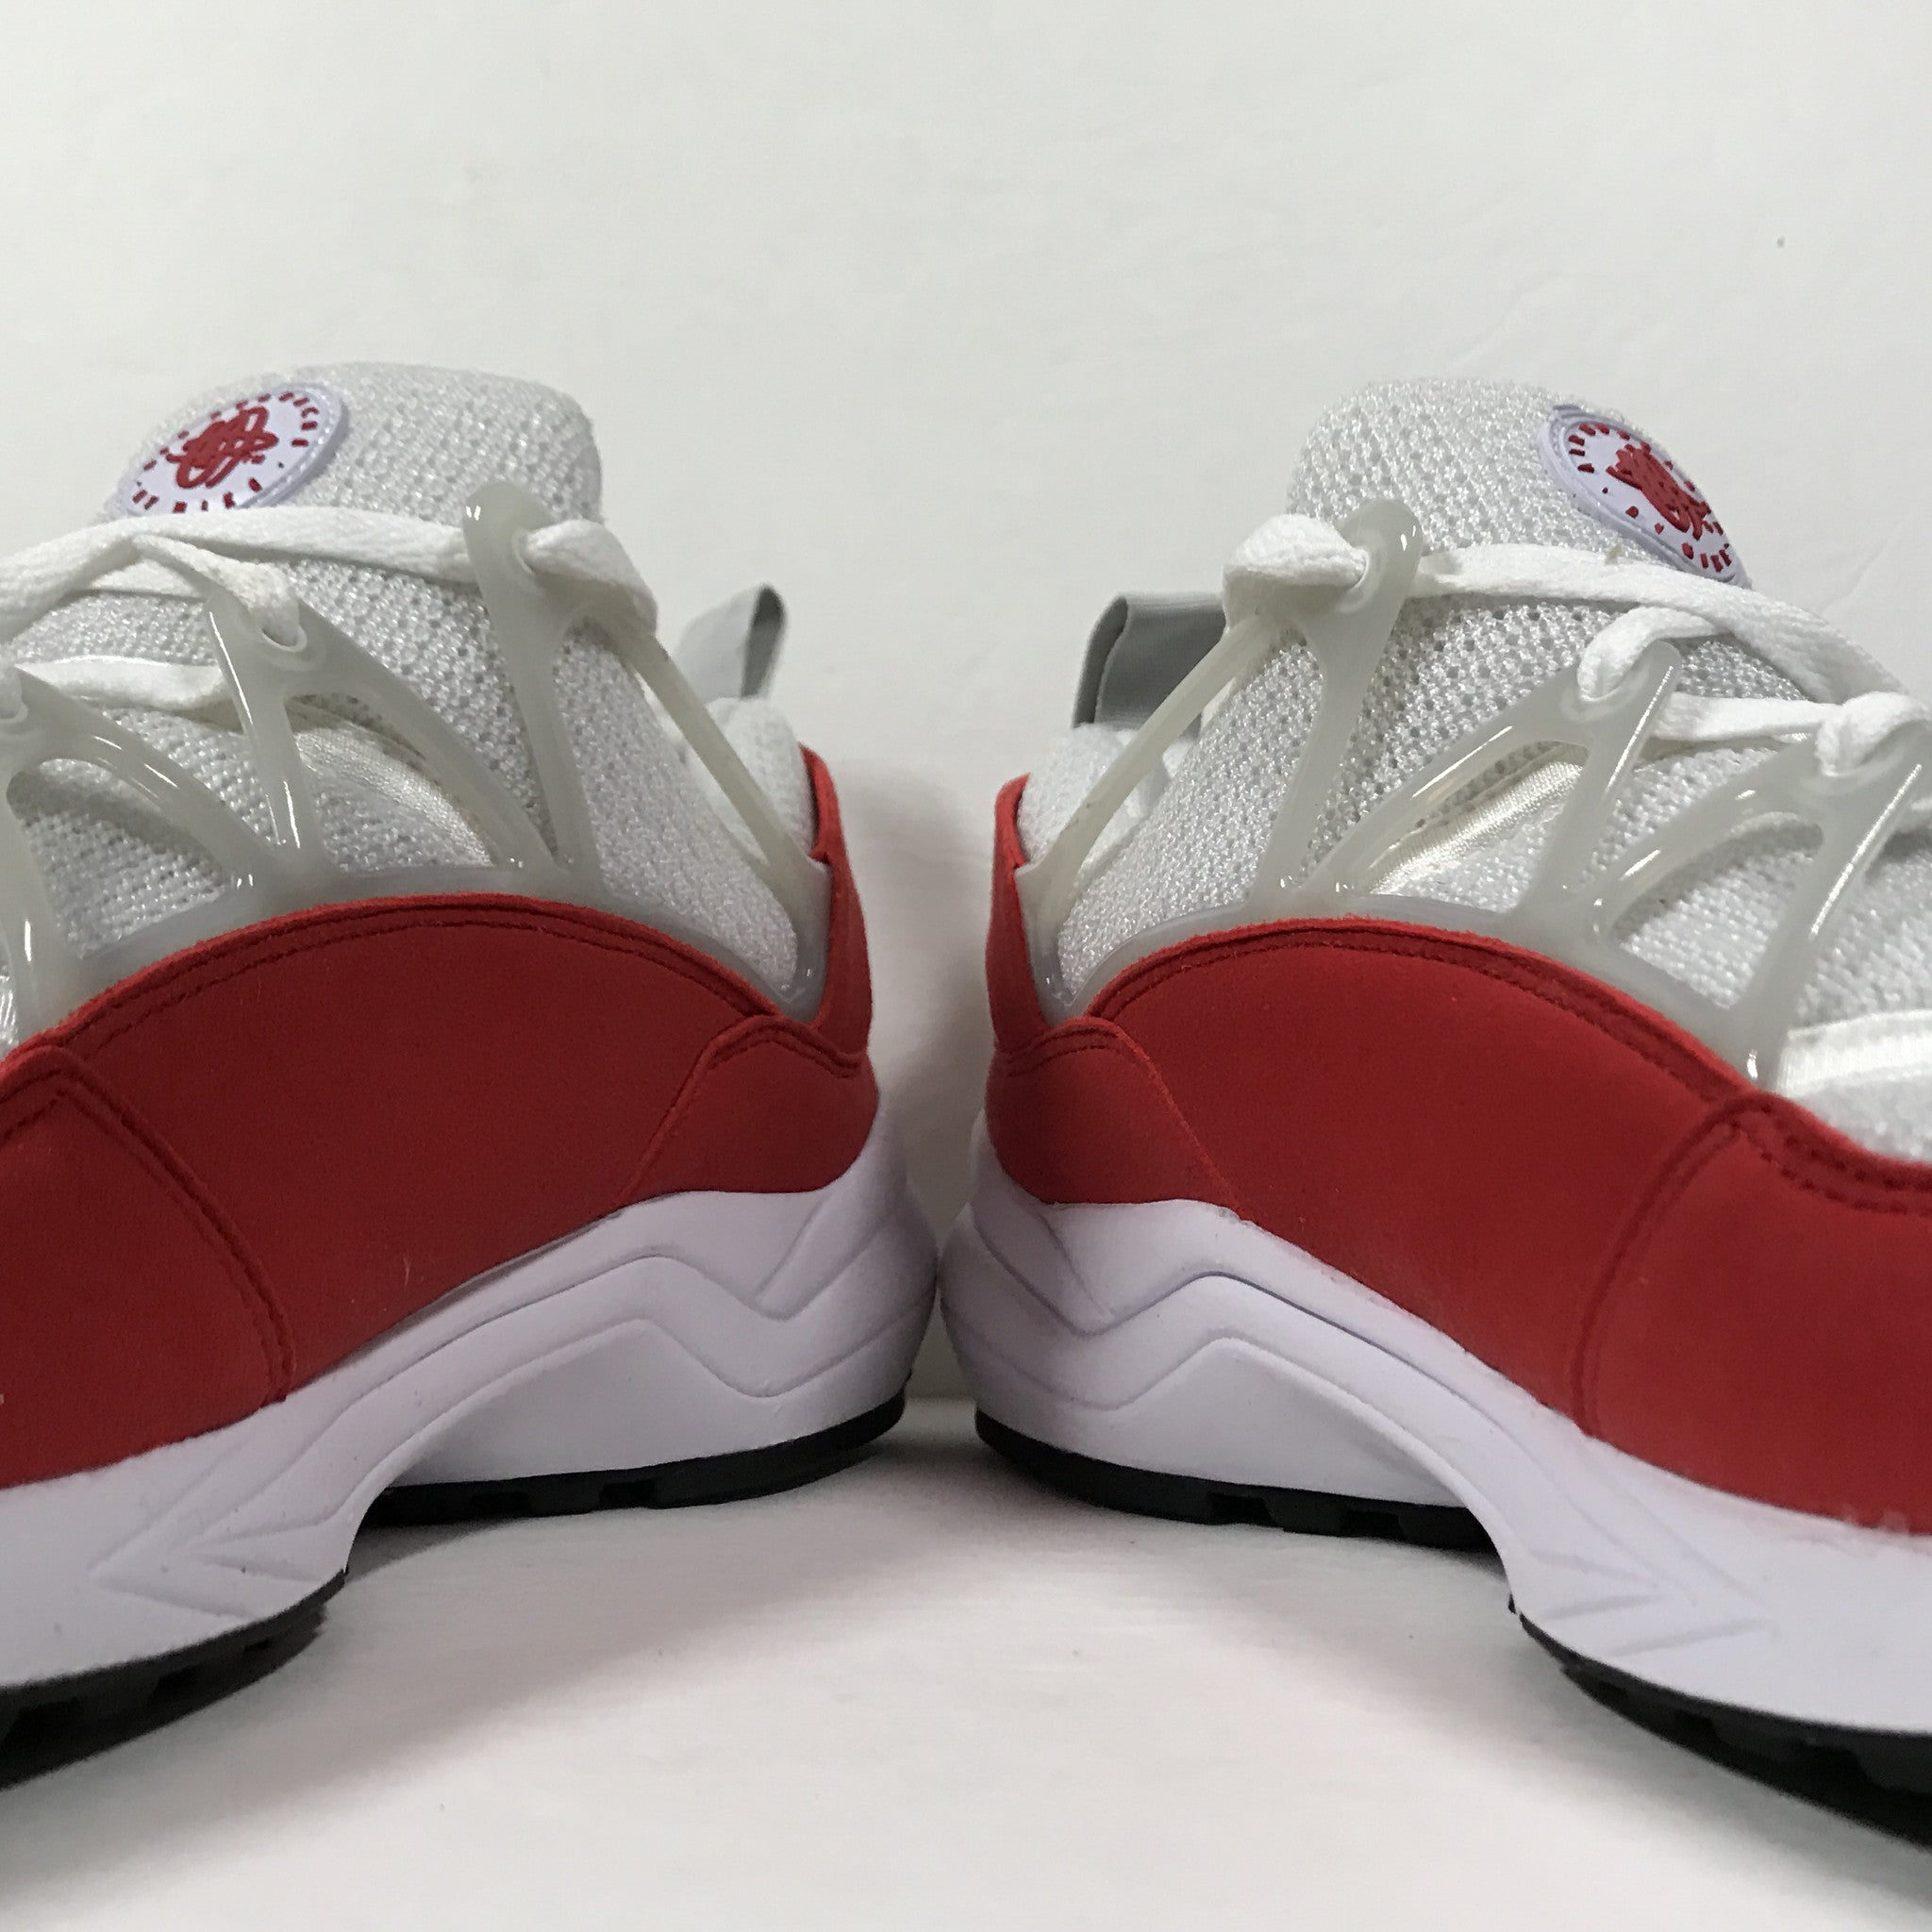 DS Nike Air Huarache Light Red Size 10.5 - DOPEFOOT  - 3